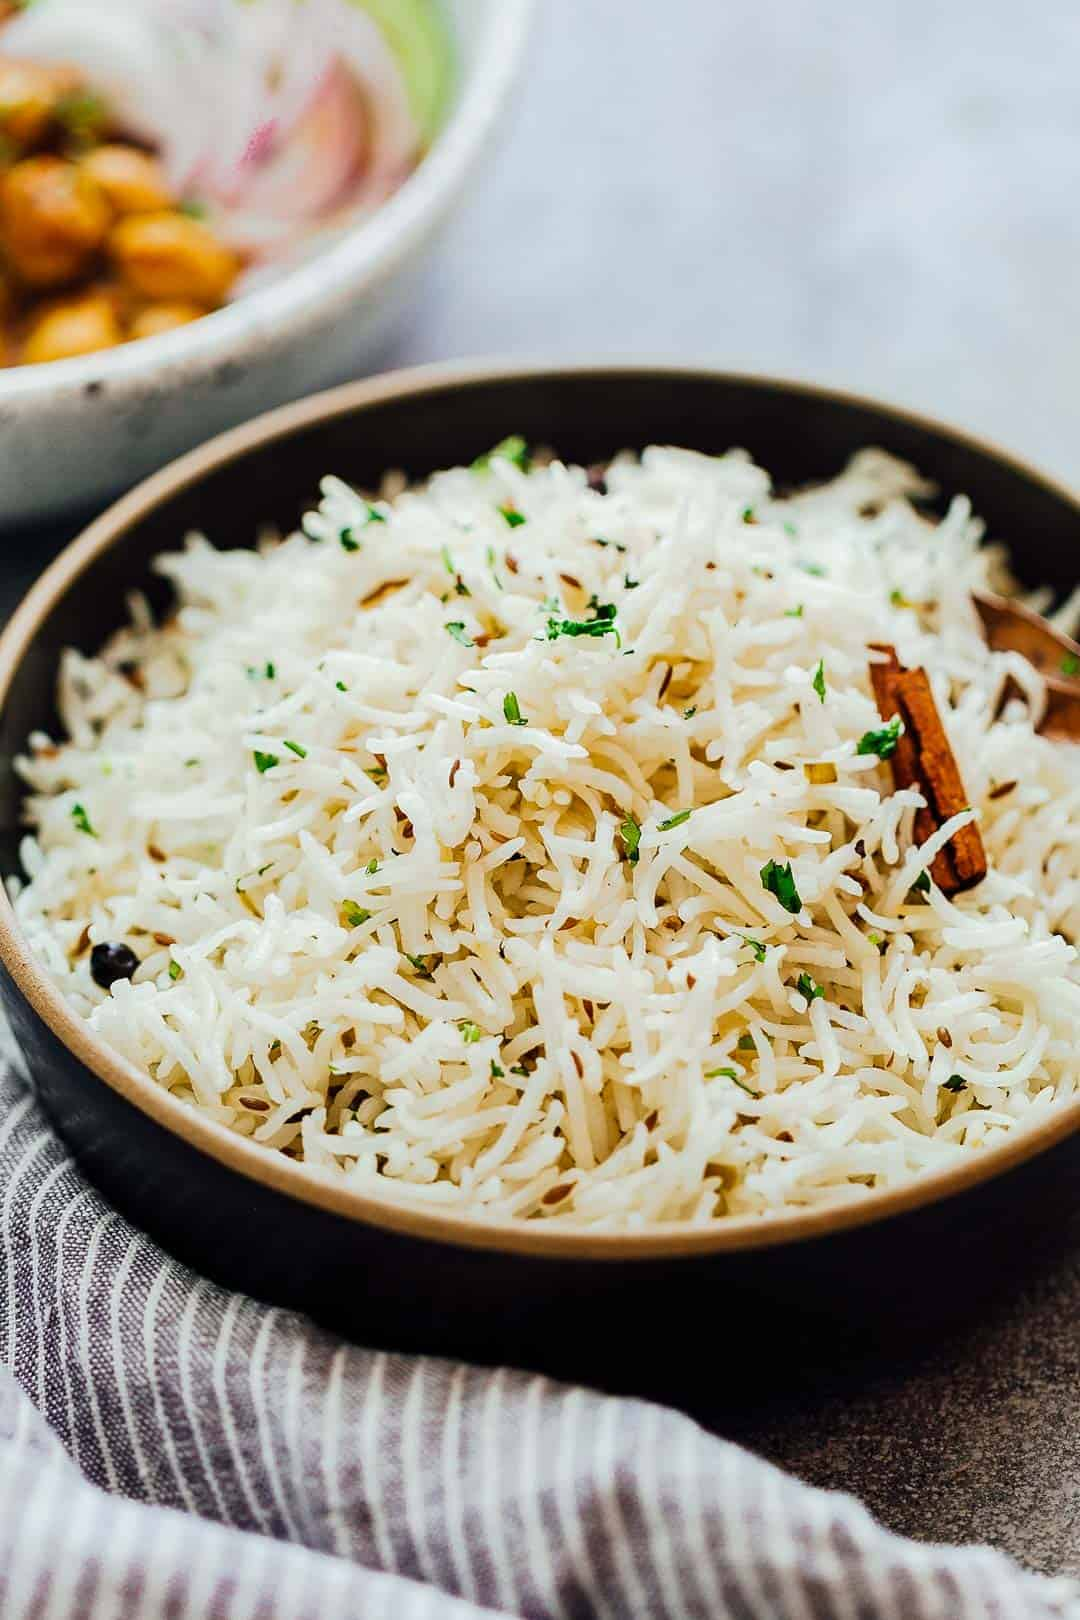 Close up of the perfect, steamed jeera rice or Indian cumin rice served in a bowl